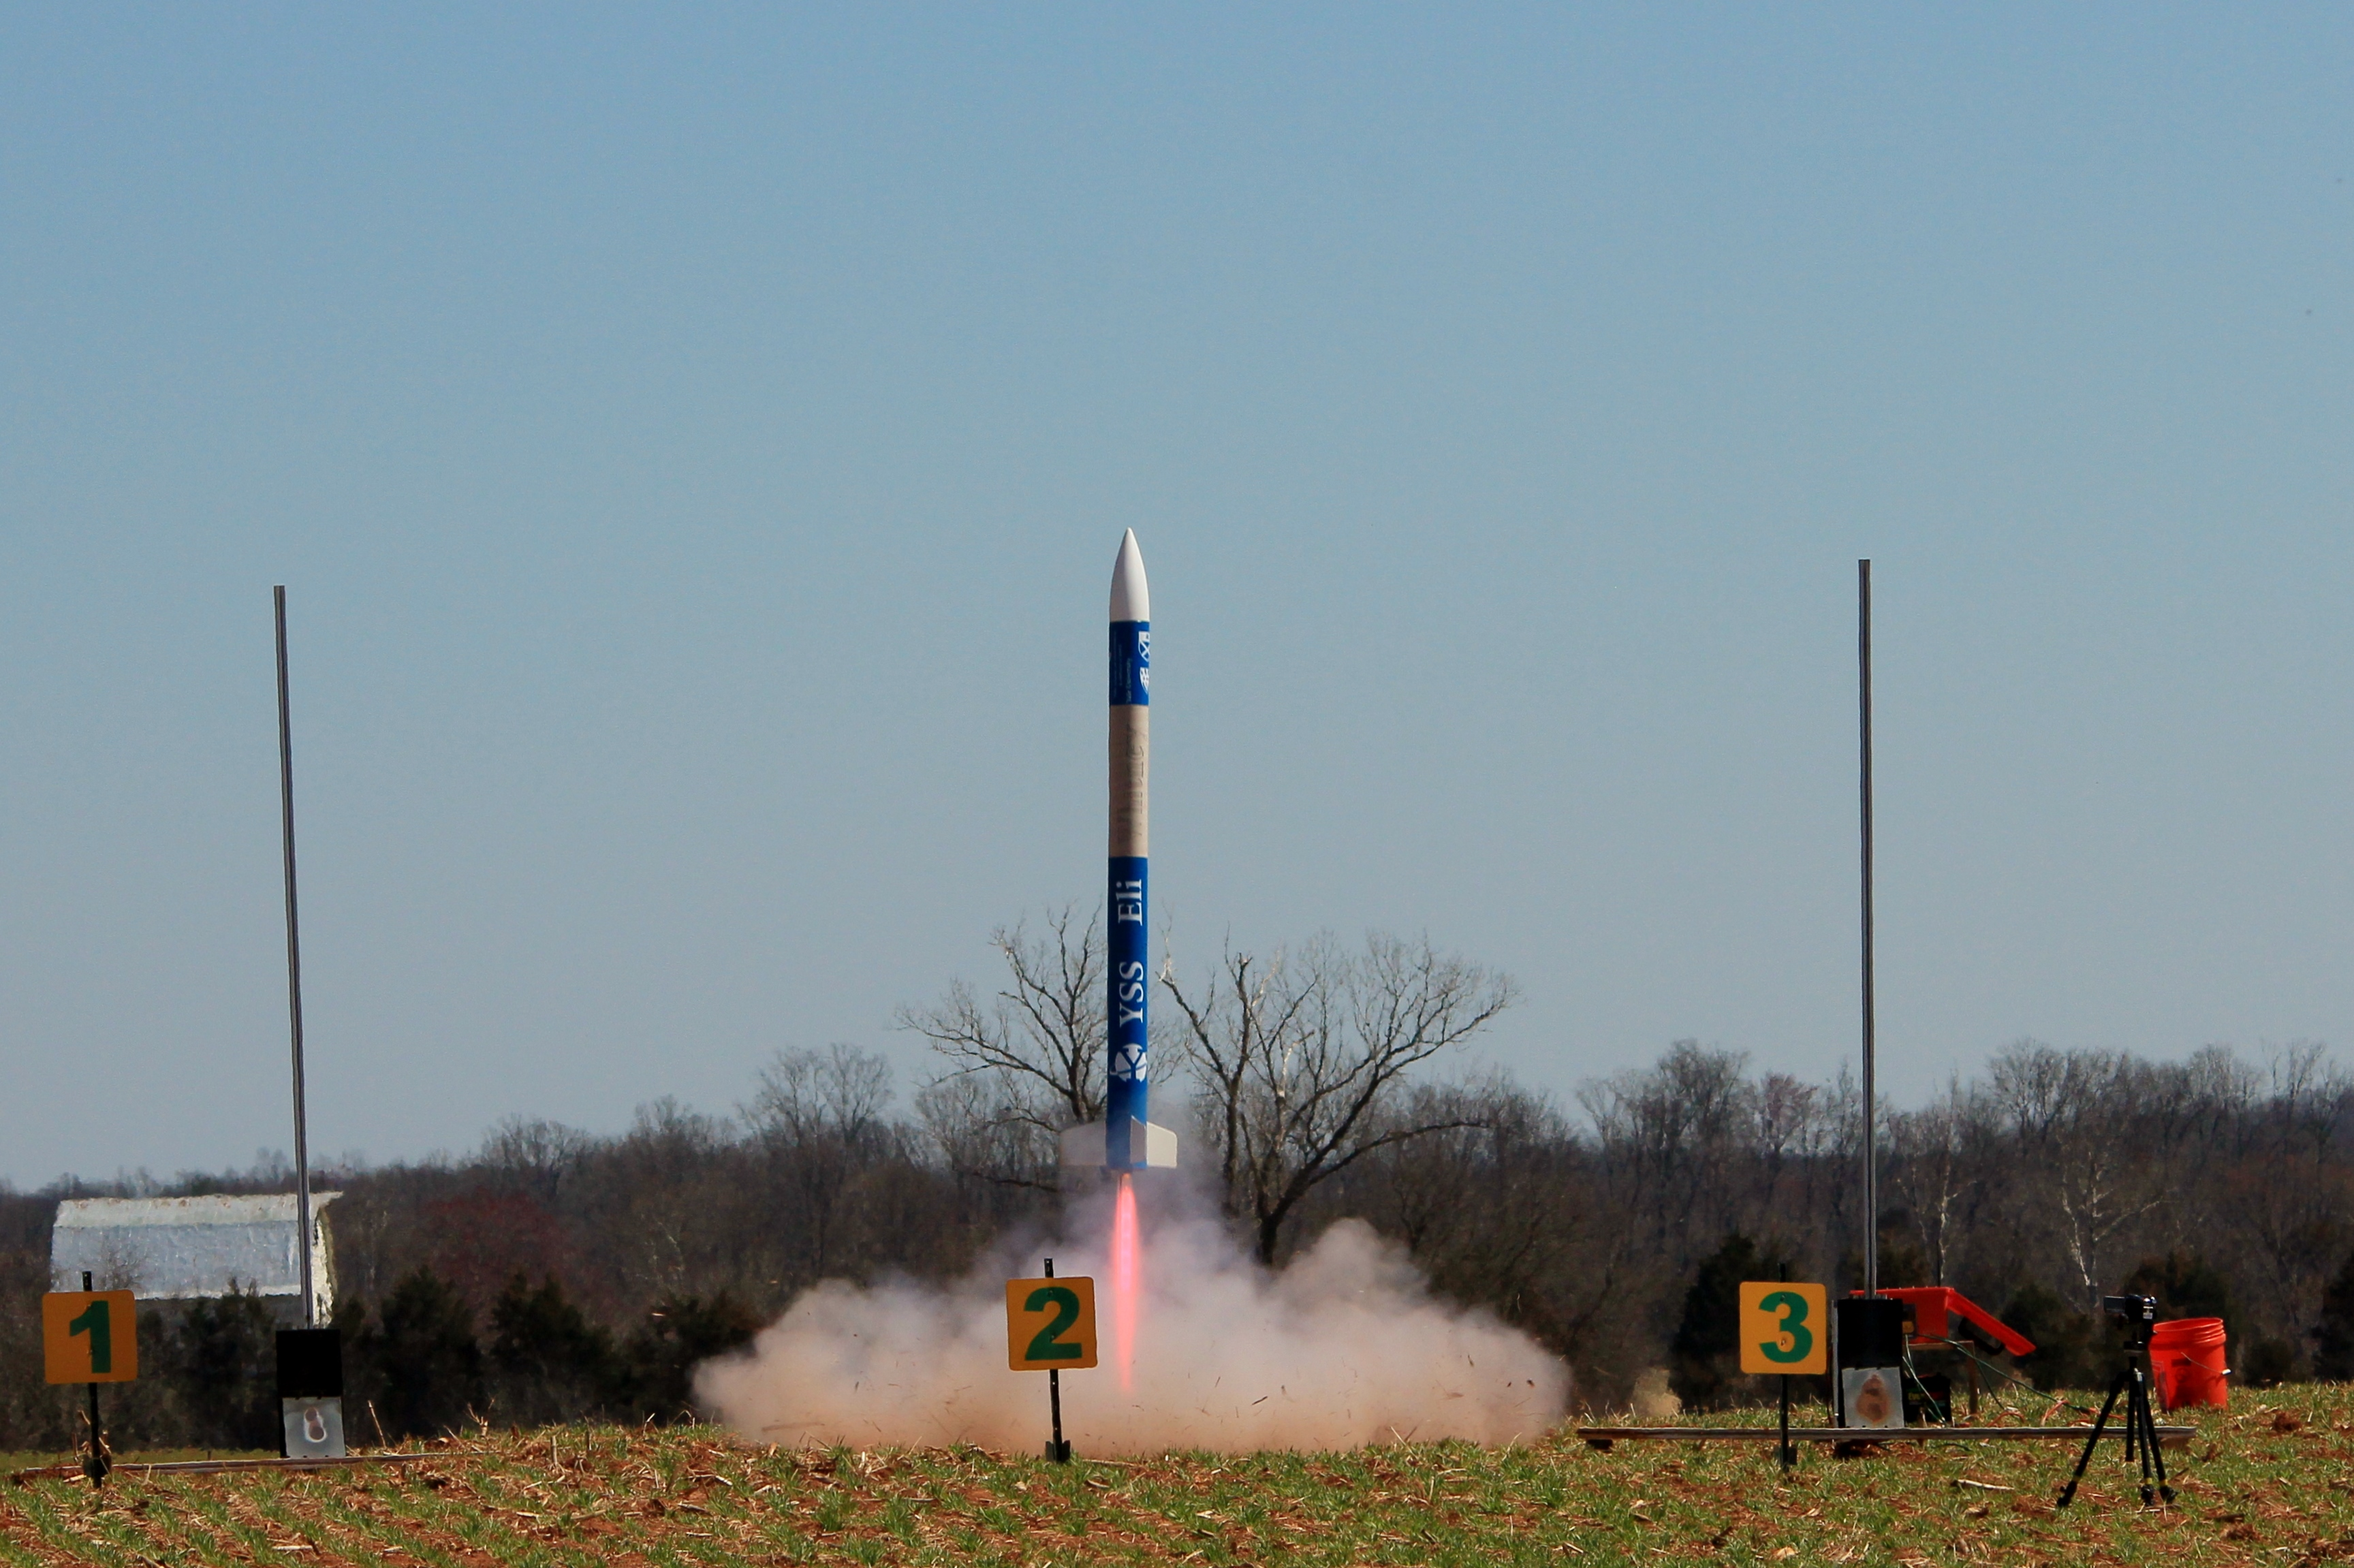 First competition launch of the YSS Eli Whitney